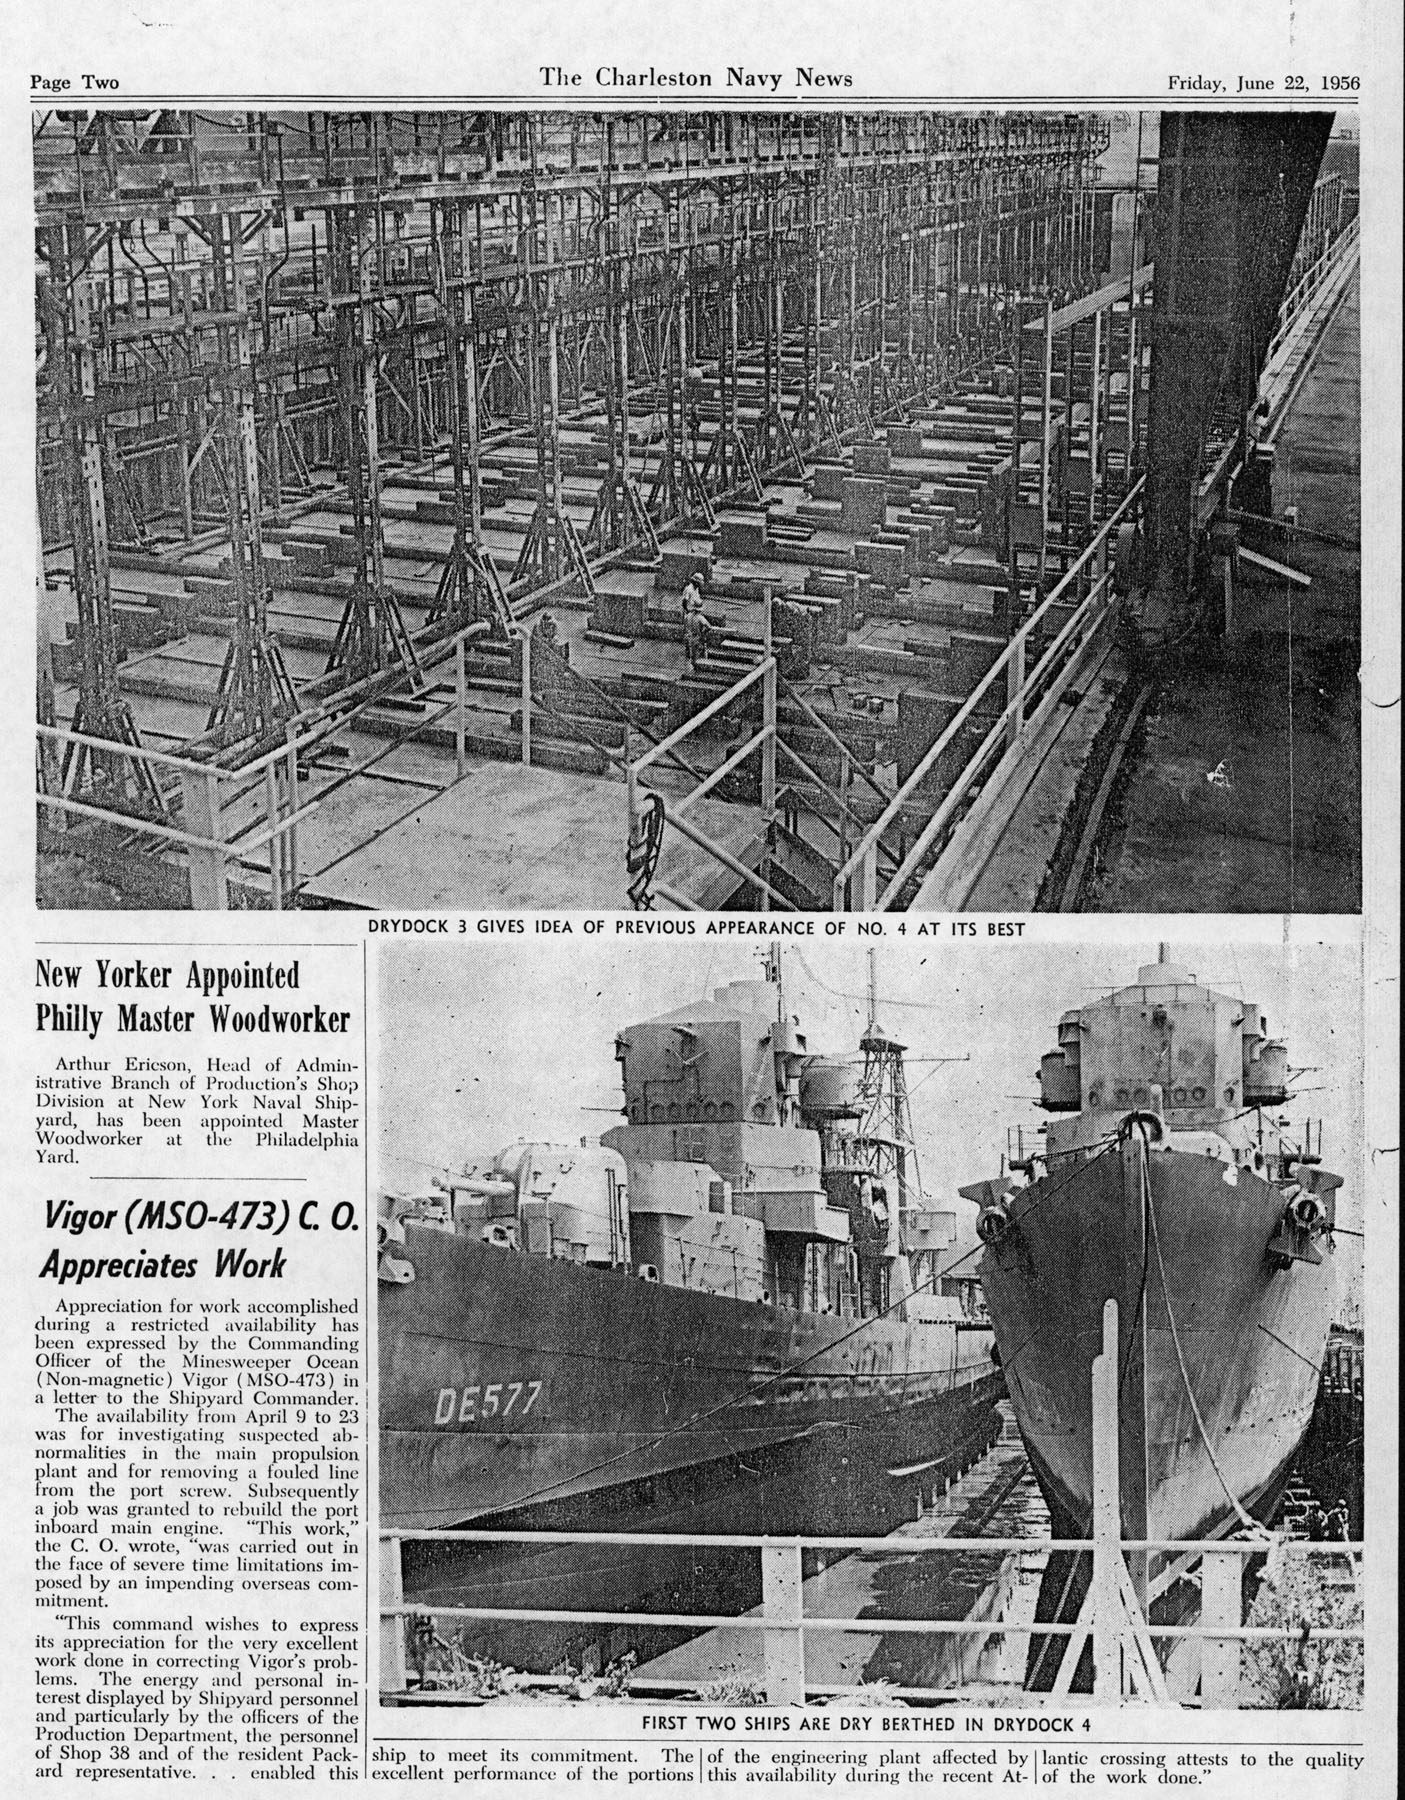 The Charleston Navy News, Volume 14, Edition 24, page ii